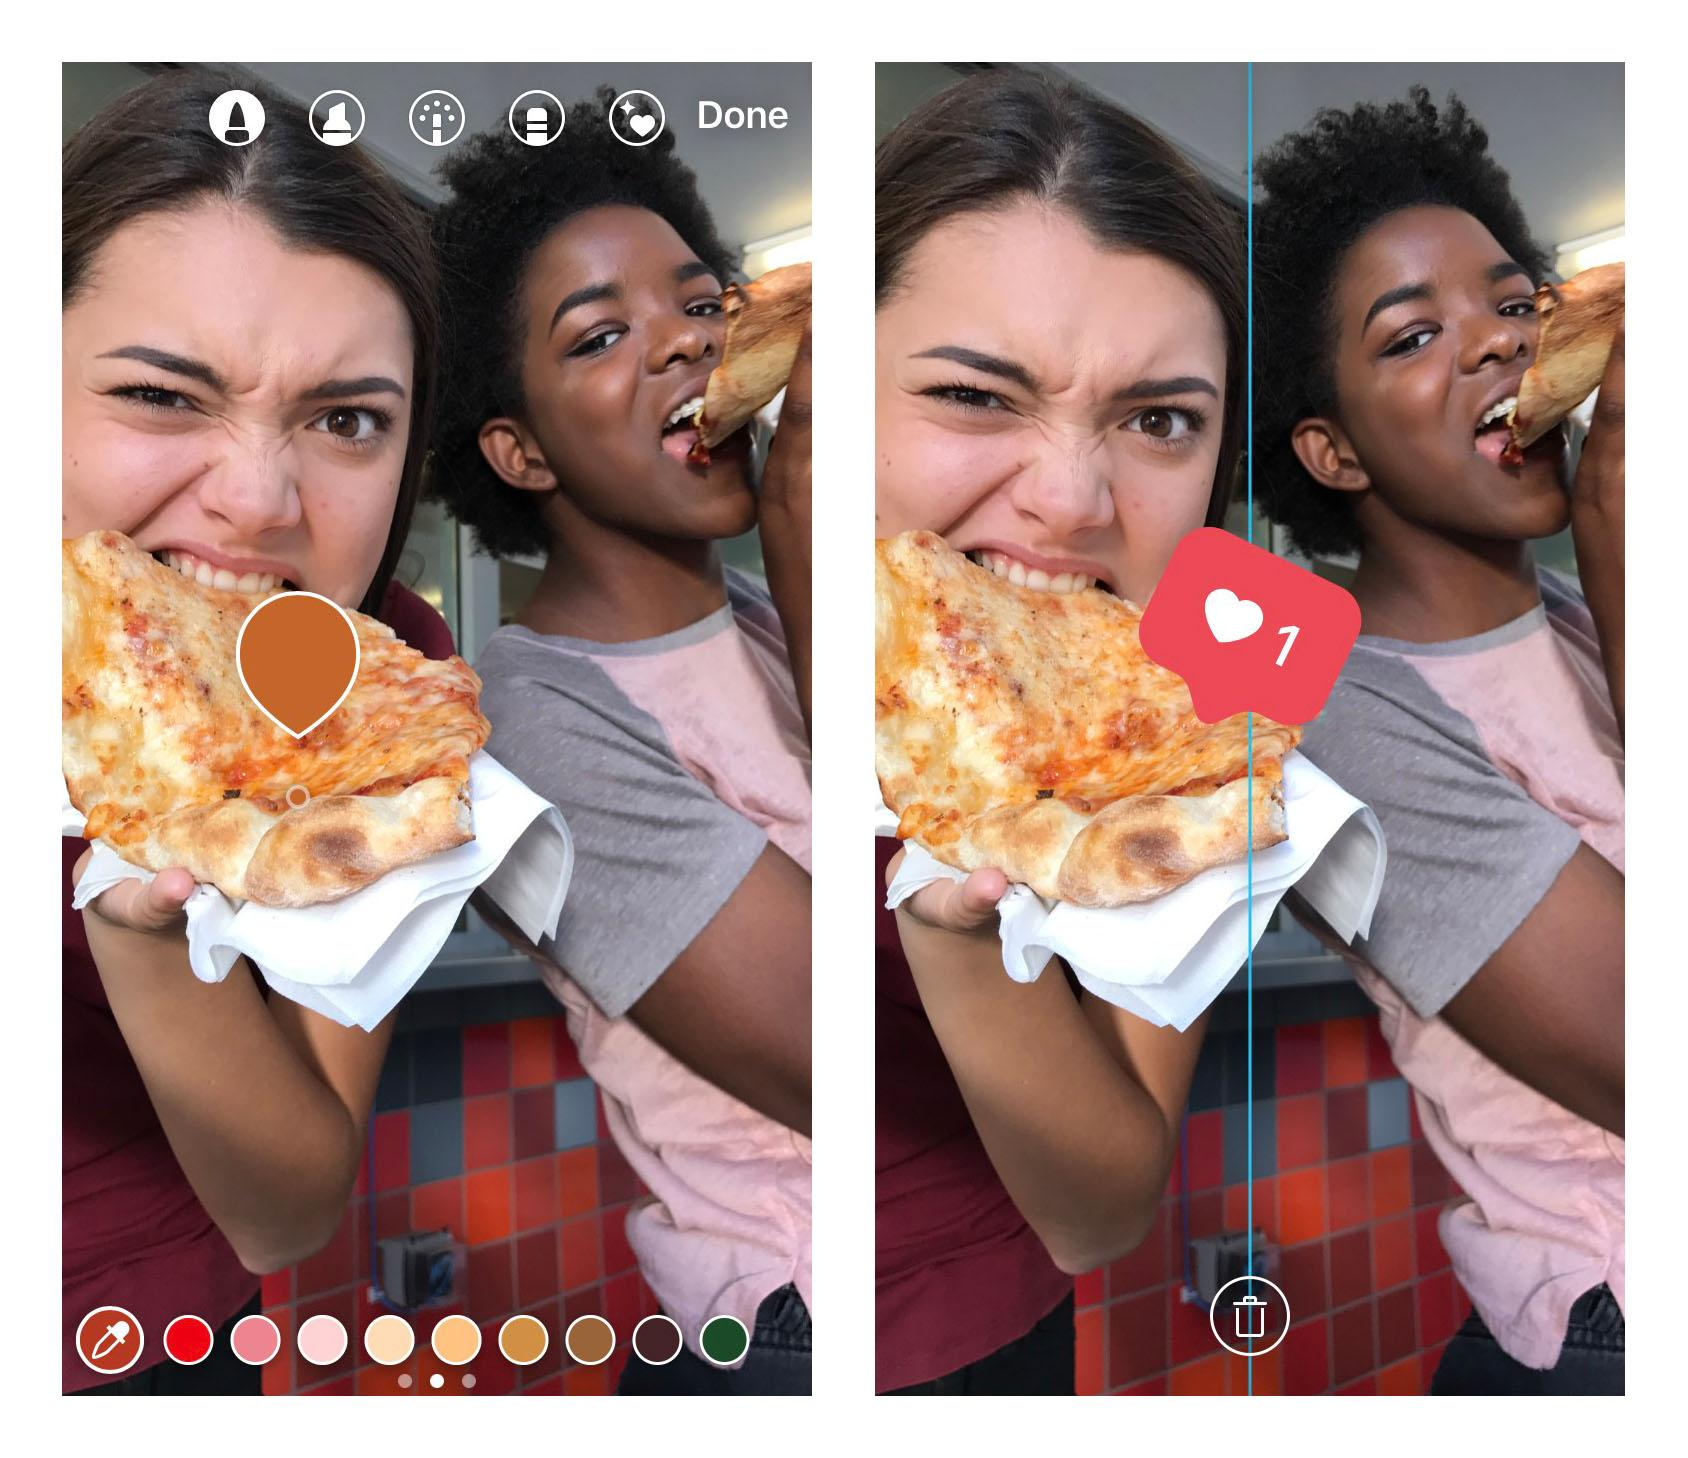 Instagram Stories now let you poll your friends